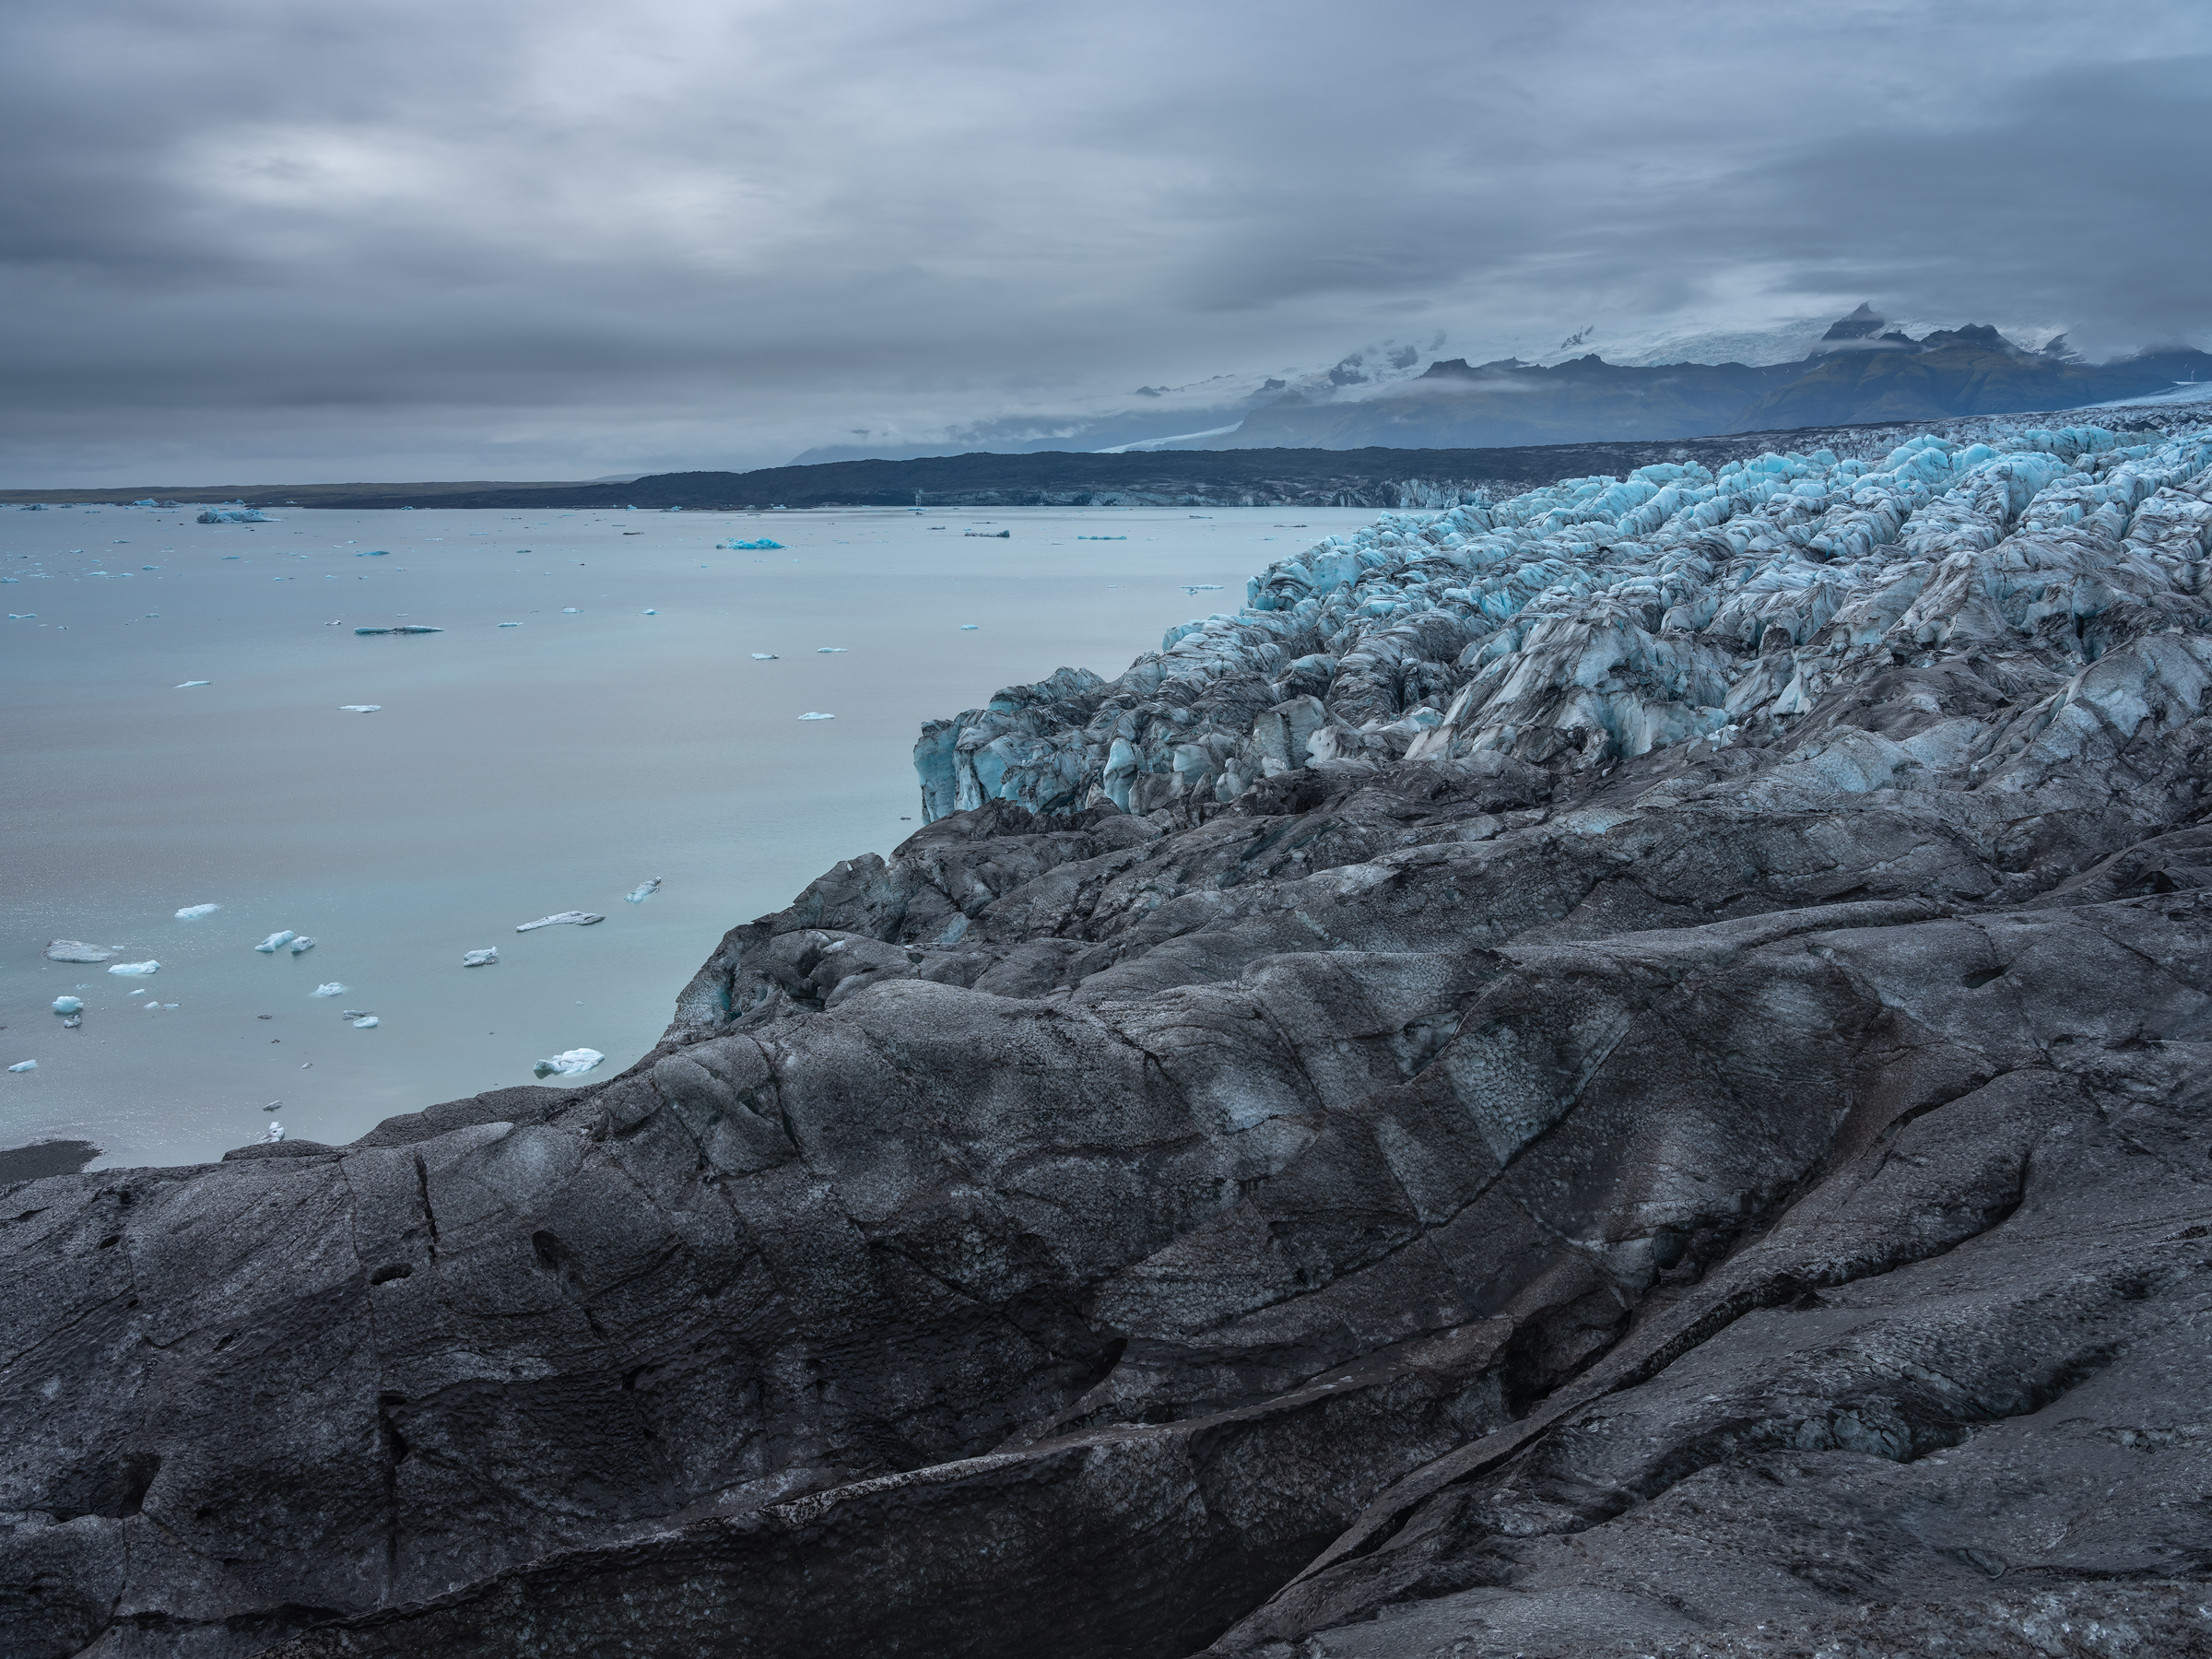 Black ridges of ice give way to the ice seracs that feed the glacial lagoon.